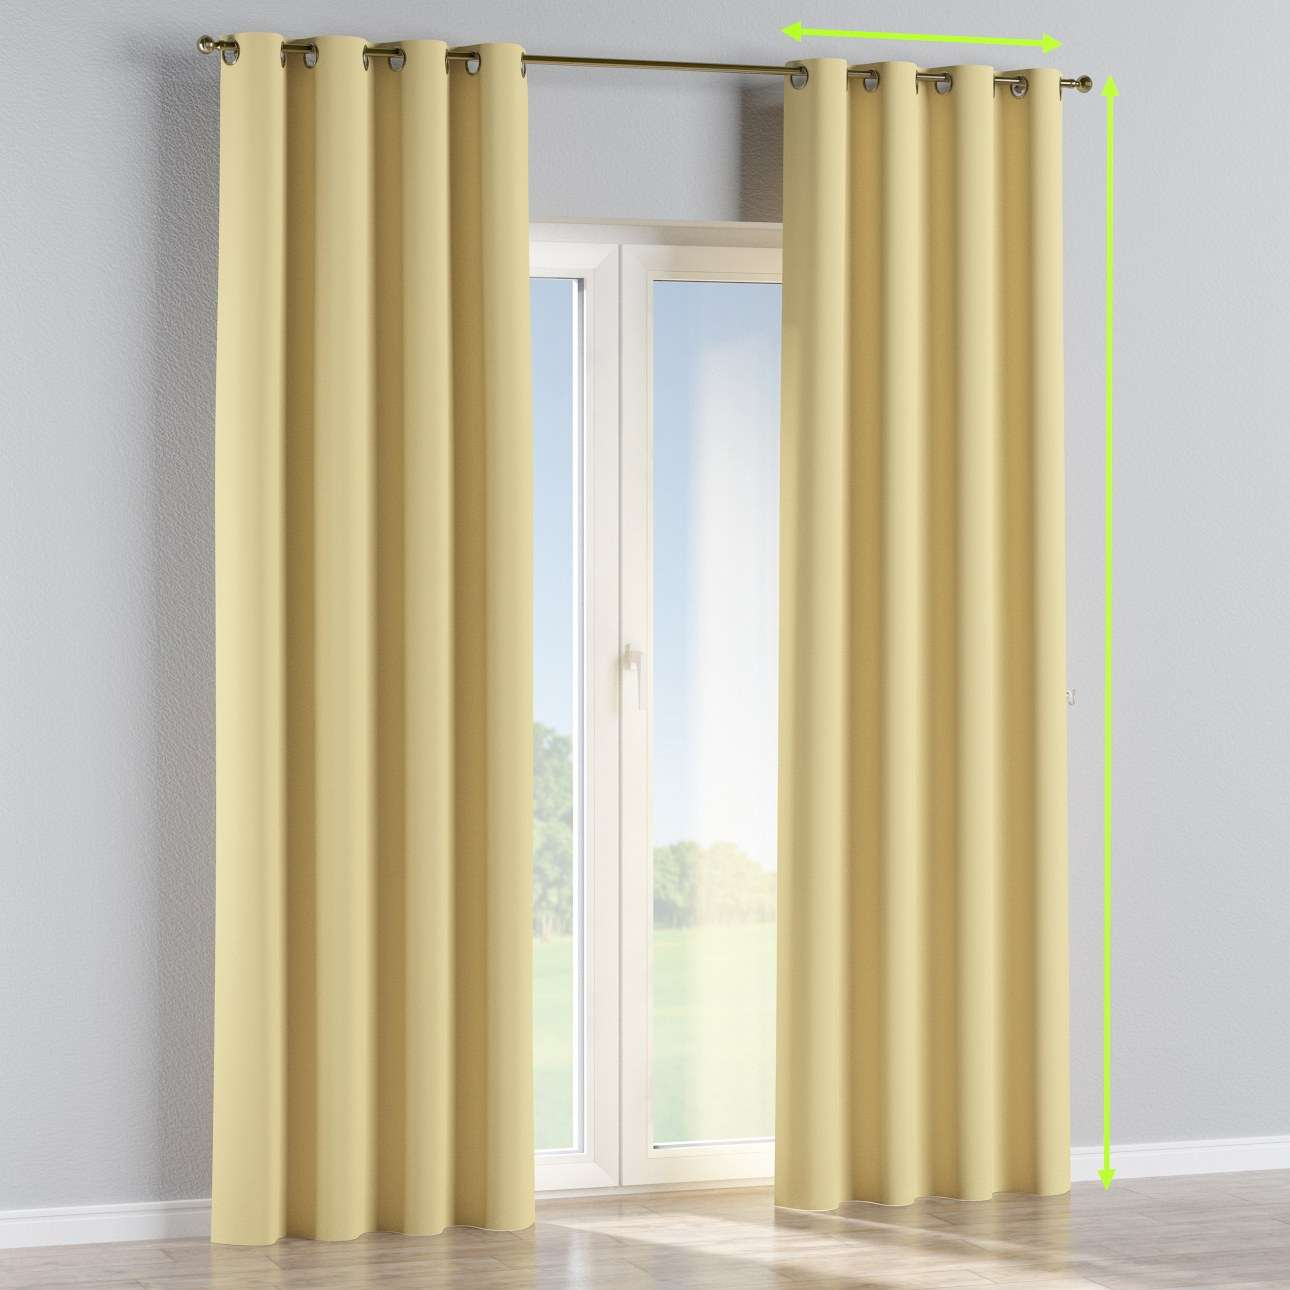 Eyelet curtain in collection Blackout, fabric: 269-12